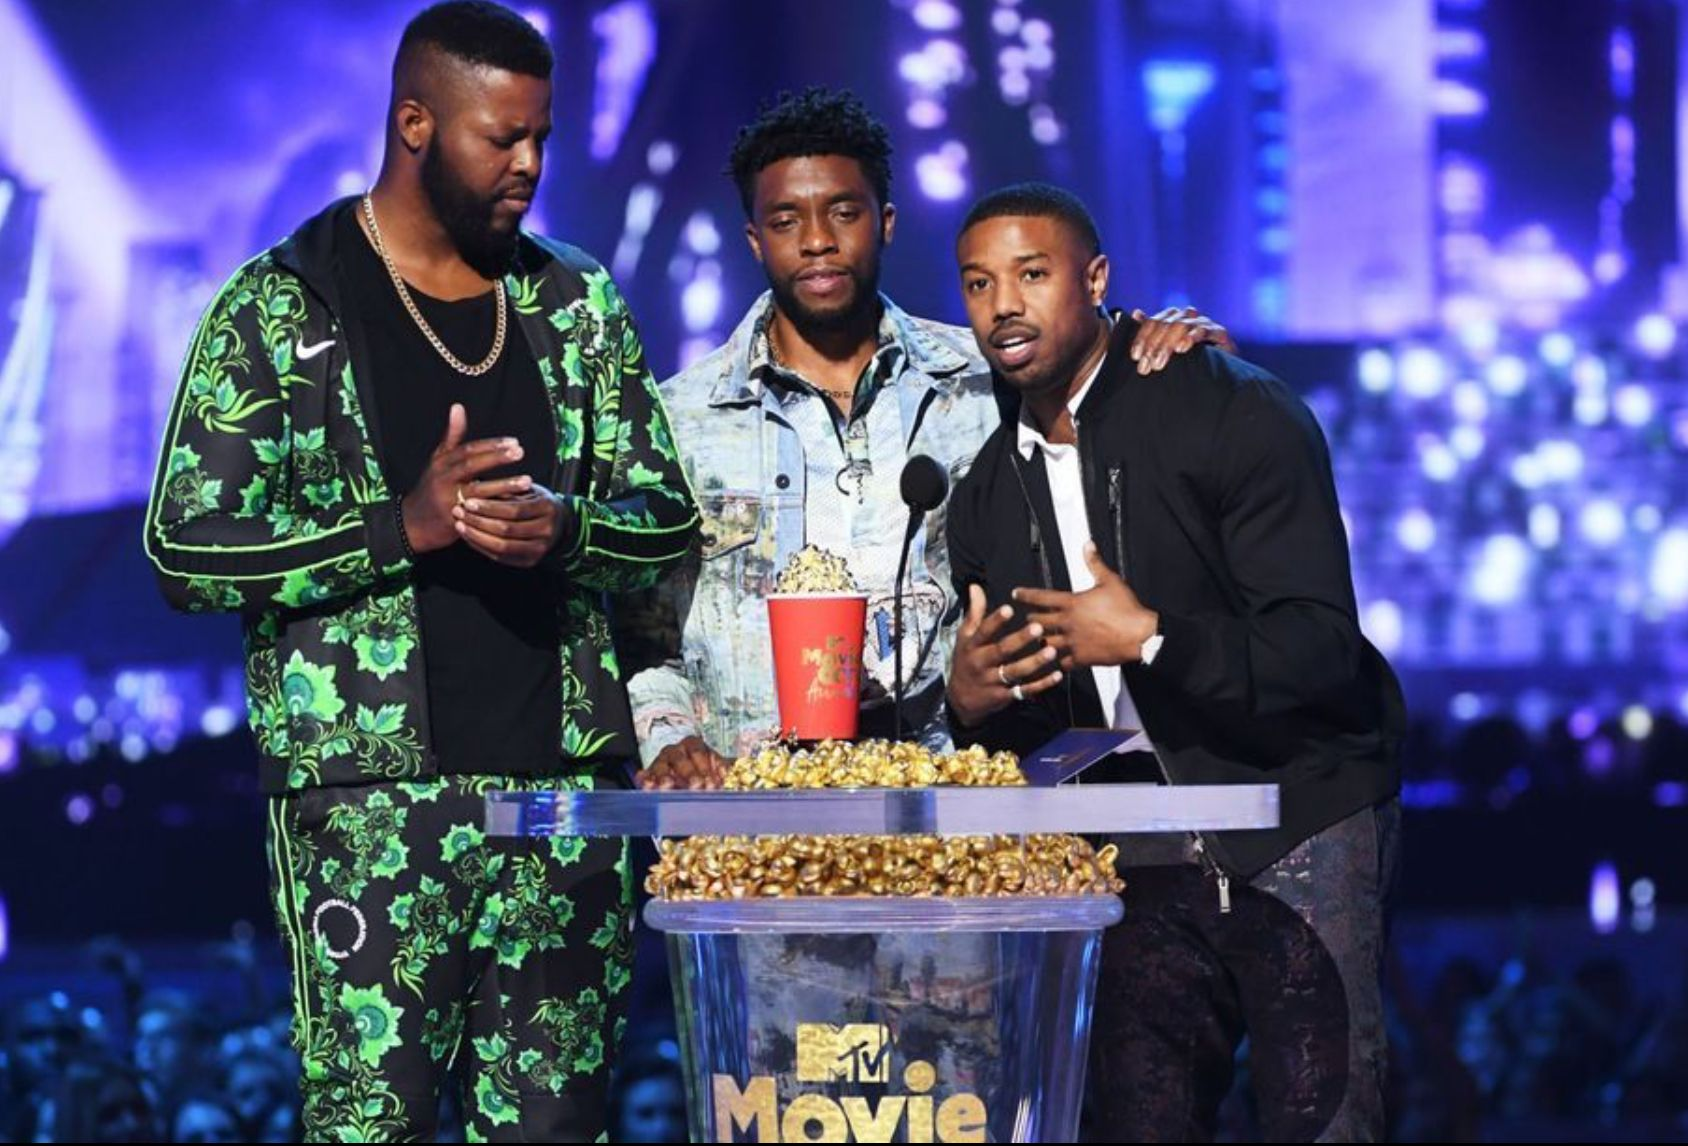 Pin by 💙Captain⚪️Rogers ️ on BlackPanther Tv awards